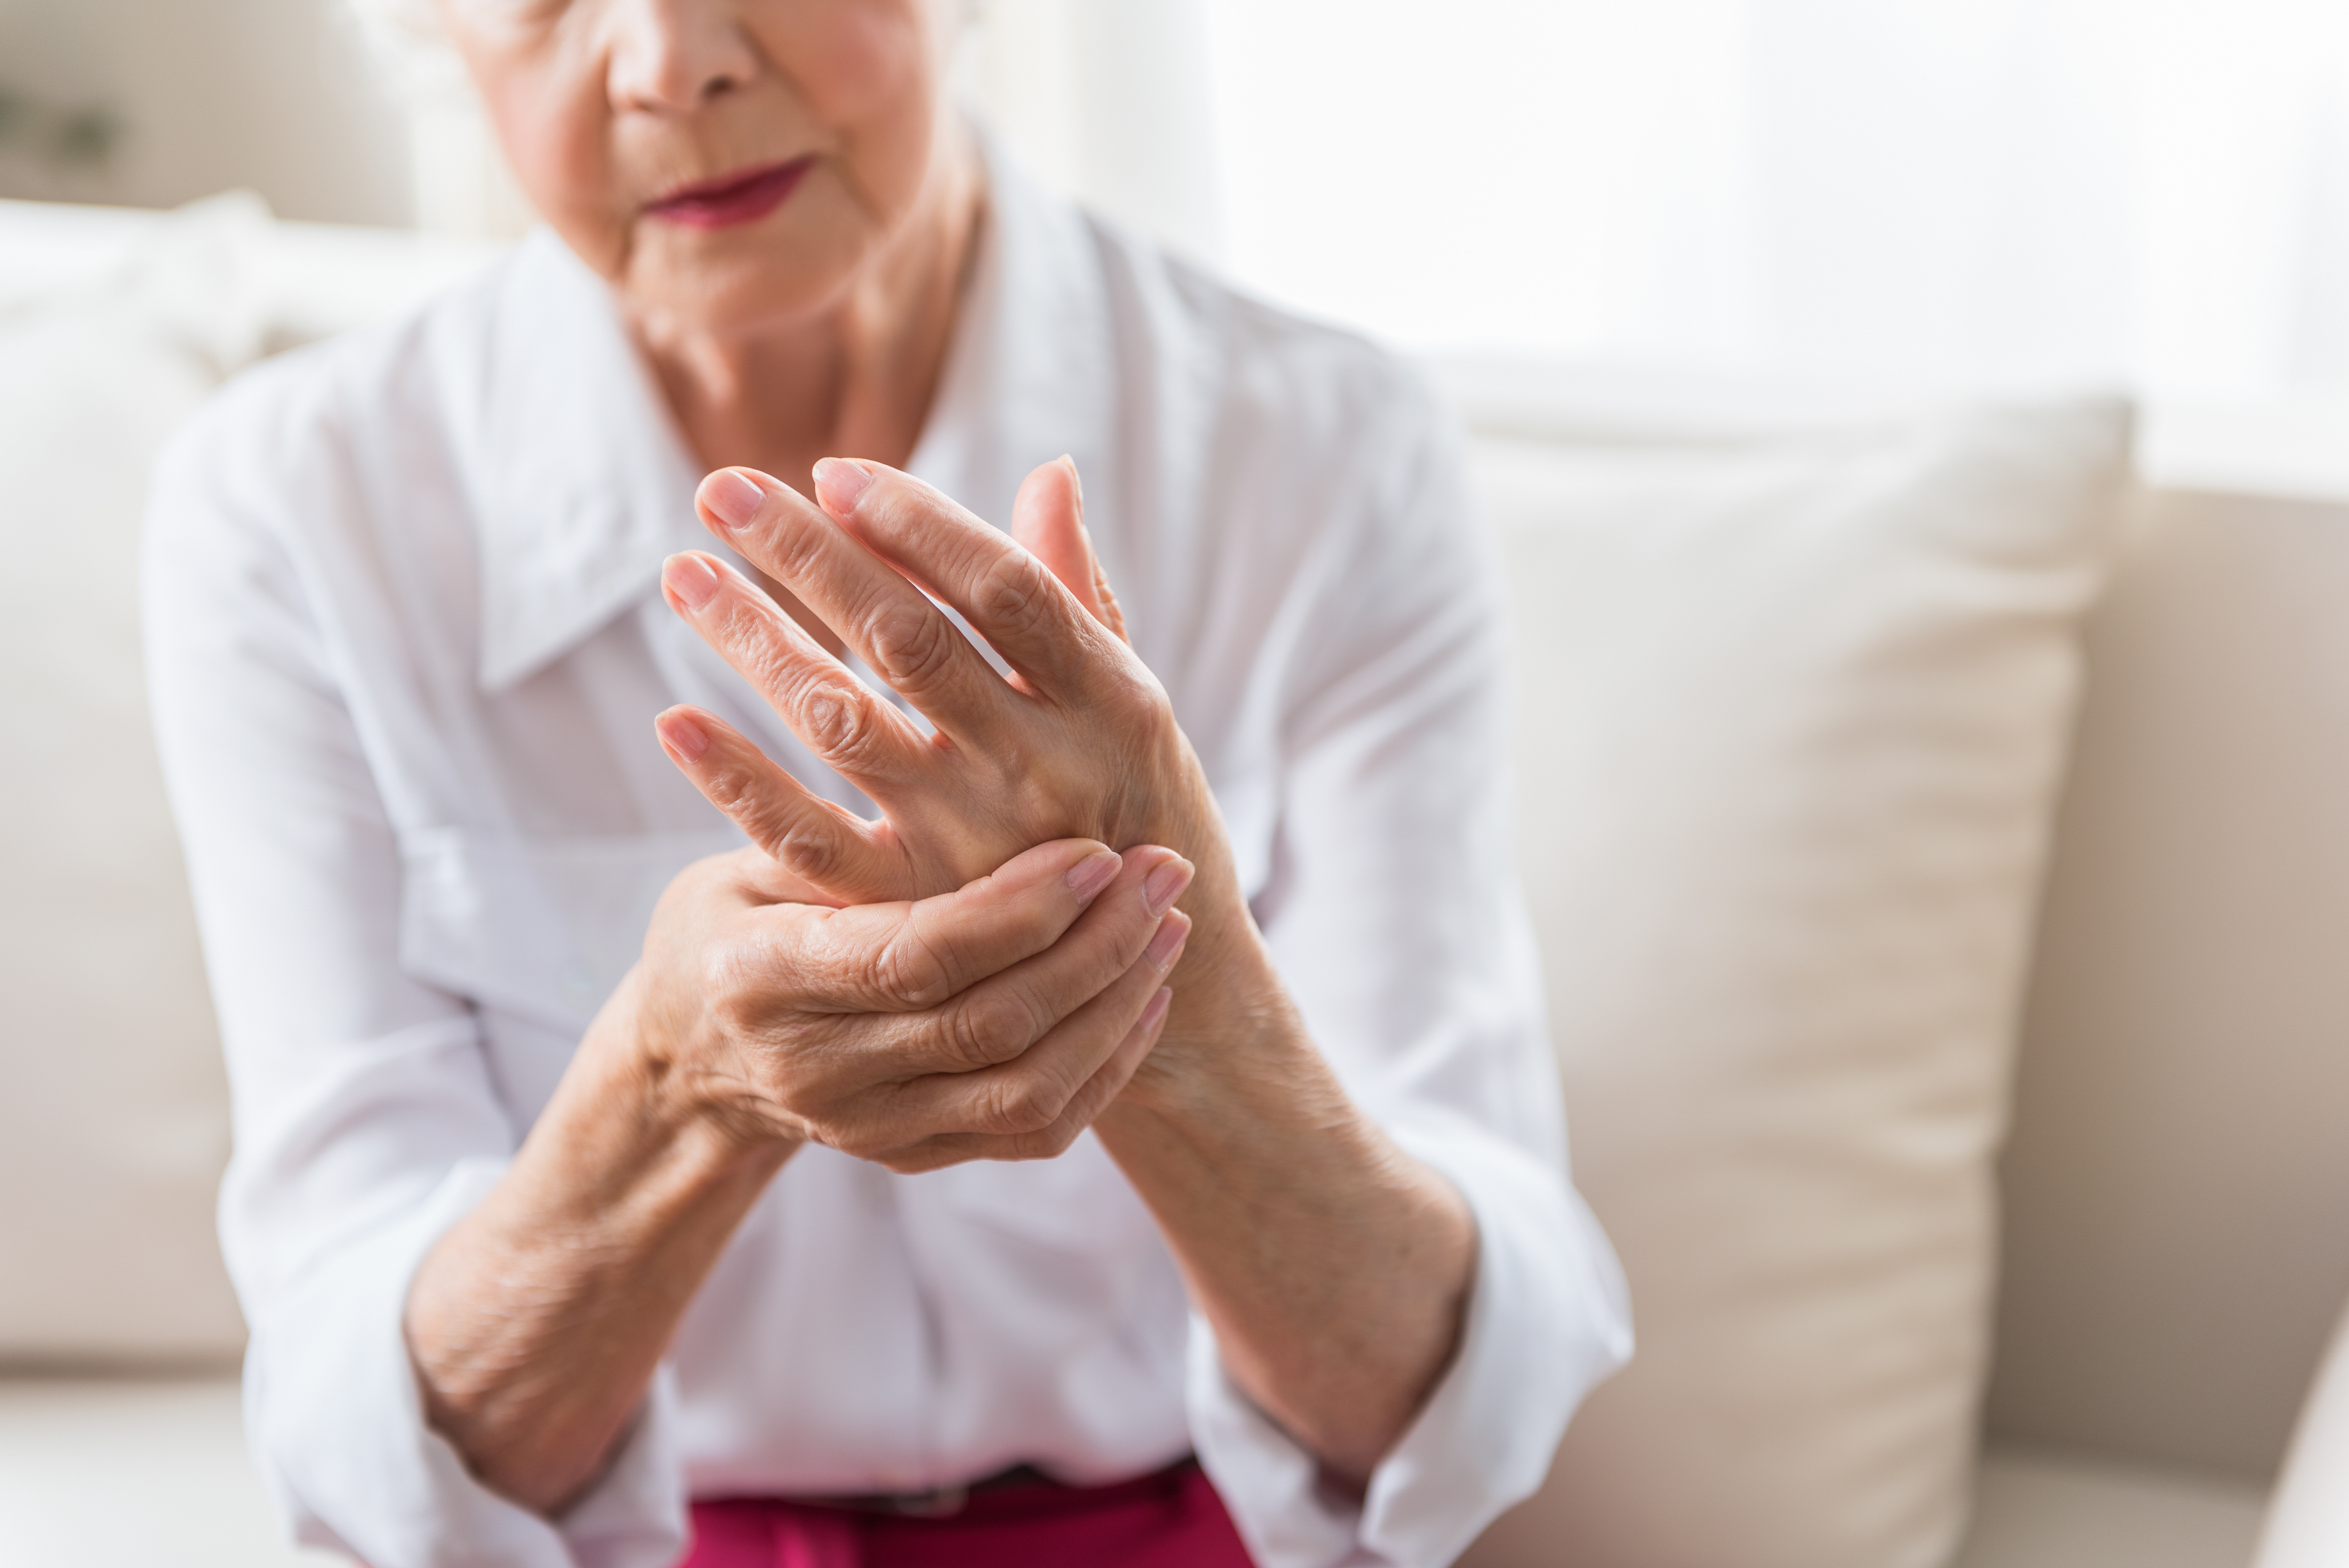 Arthritis can affect anyone. It's estimated that up to one-fourth of Americans have some type of arthritis. It's one of the leading causes of disability in the United States.